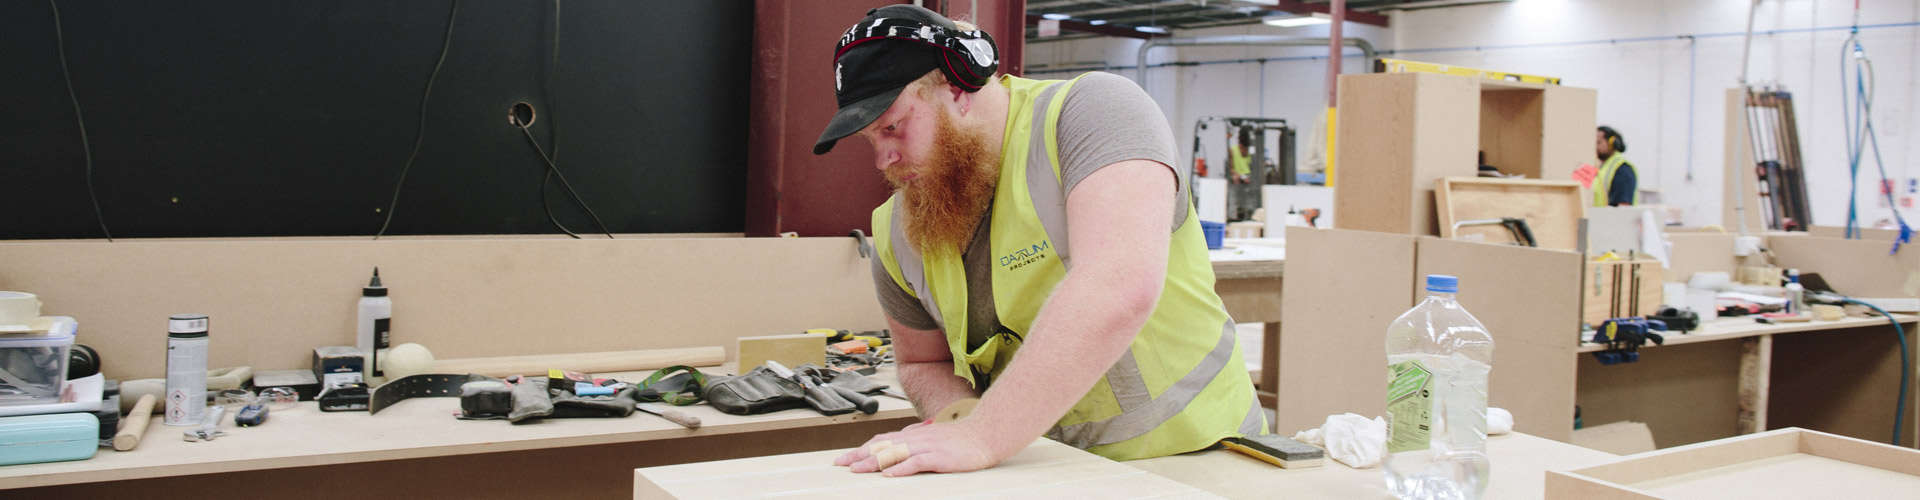 joinery manufacturing auckland